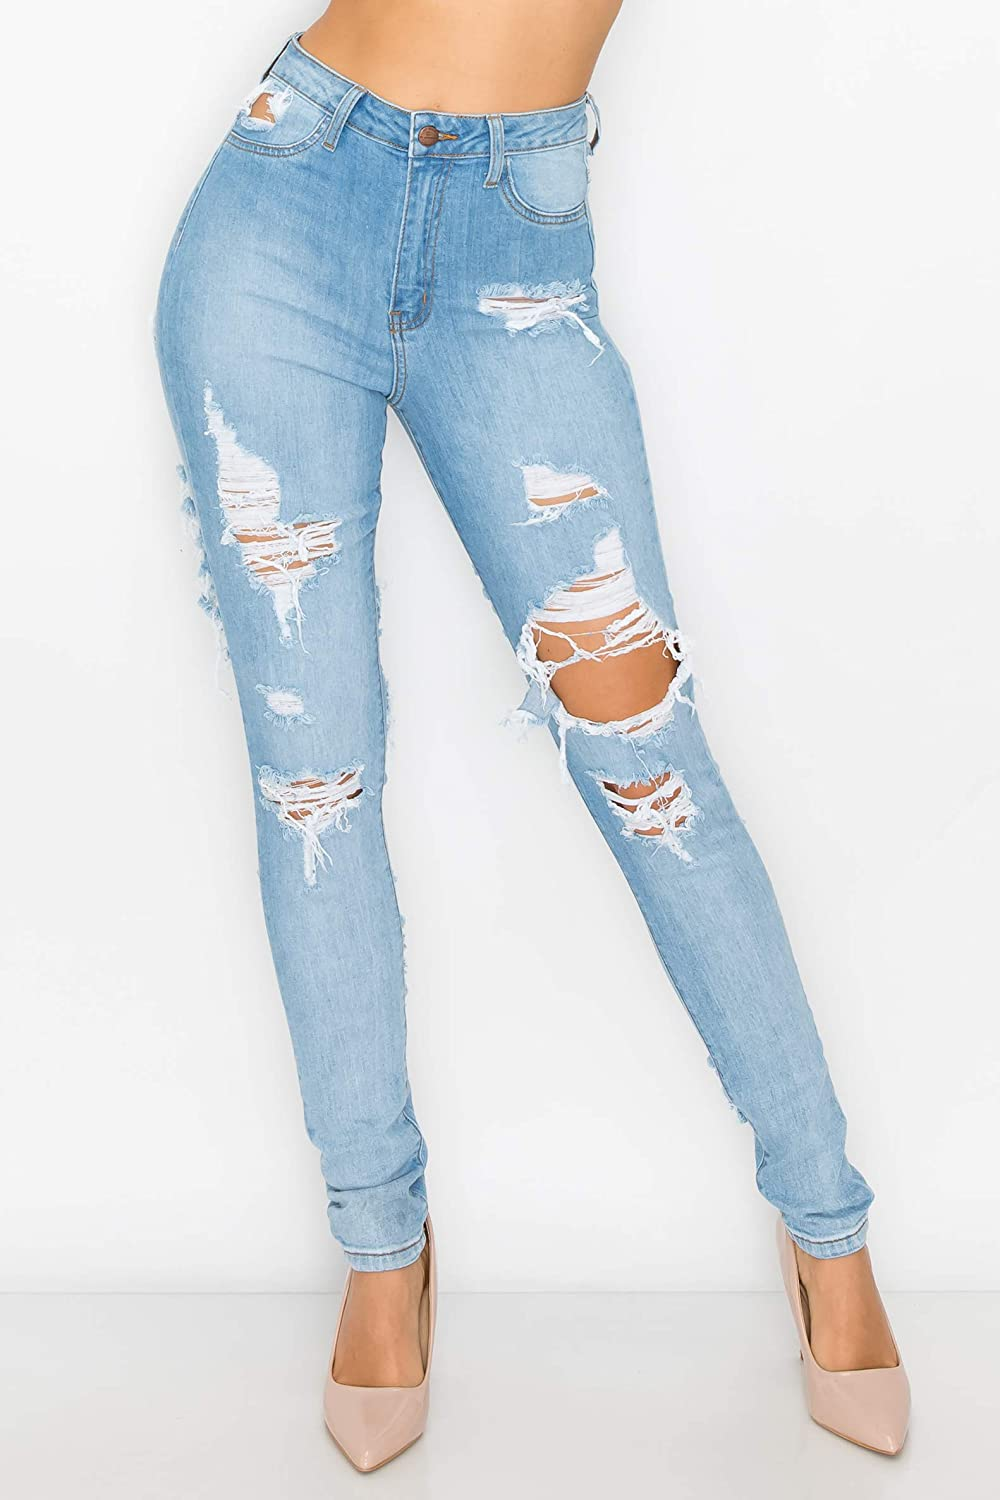 Aphrodite High Waisted Jeans for Women - High Rise Skinny Womens Hand Sanding Distressed Ripped Jeans with Cut Outs 4877 Light Blue 13